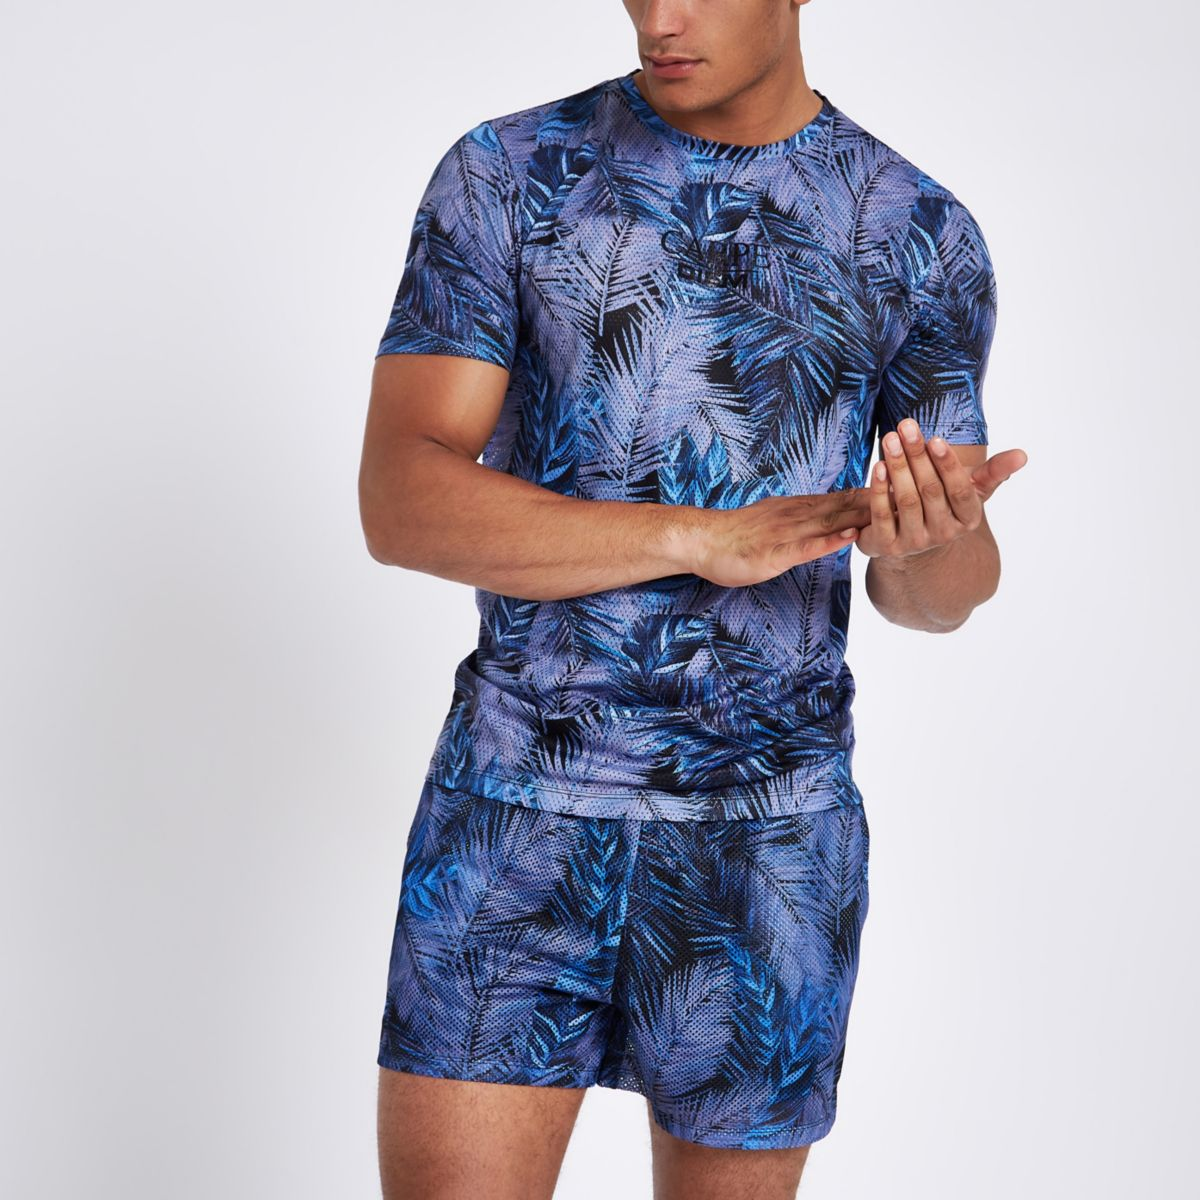 Blue palm print slim fit mesh T-shirt